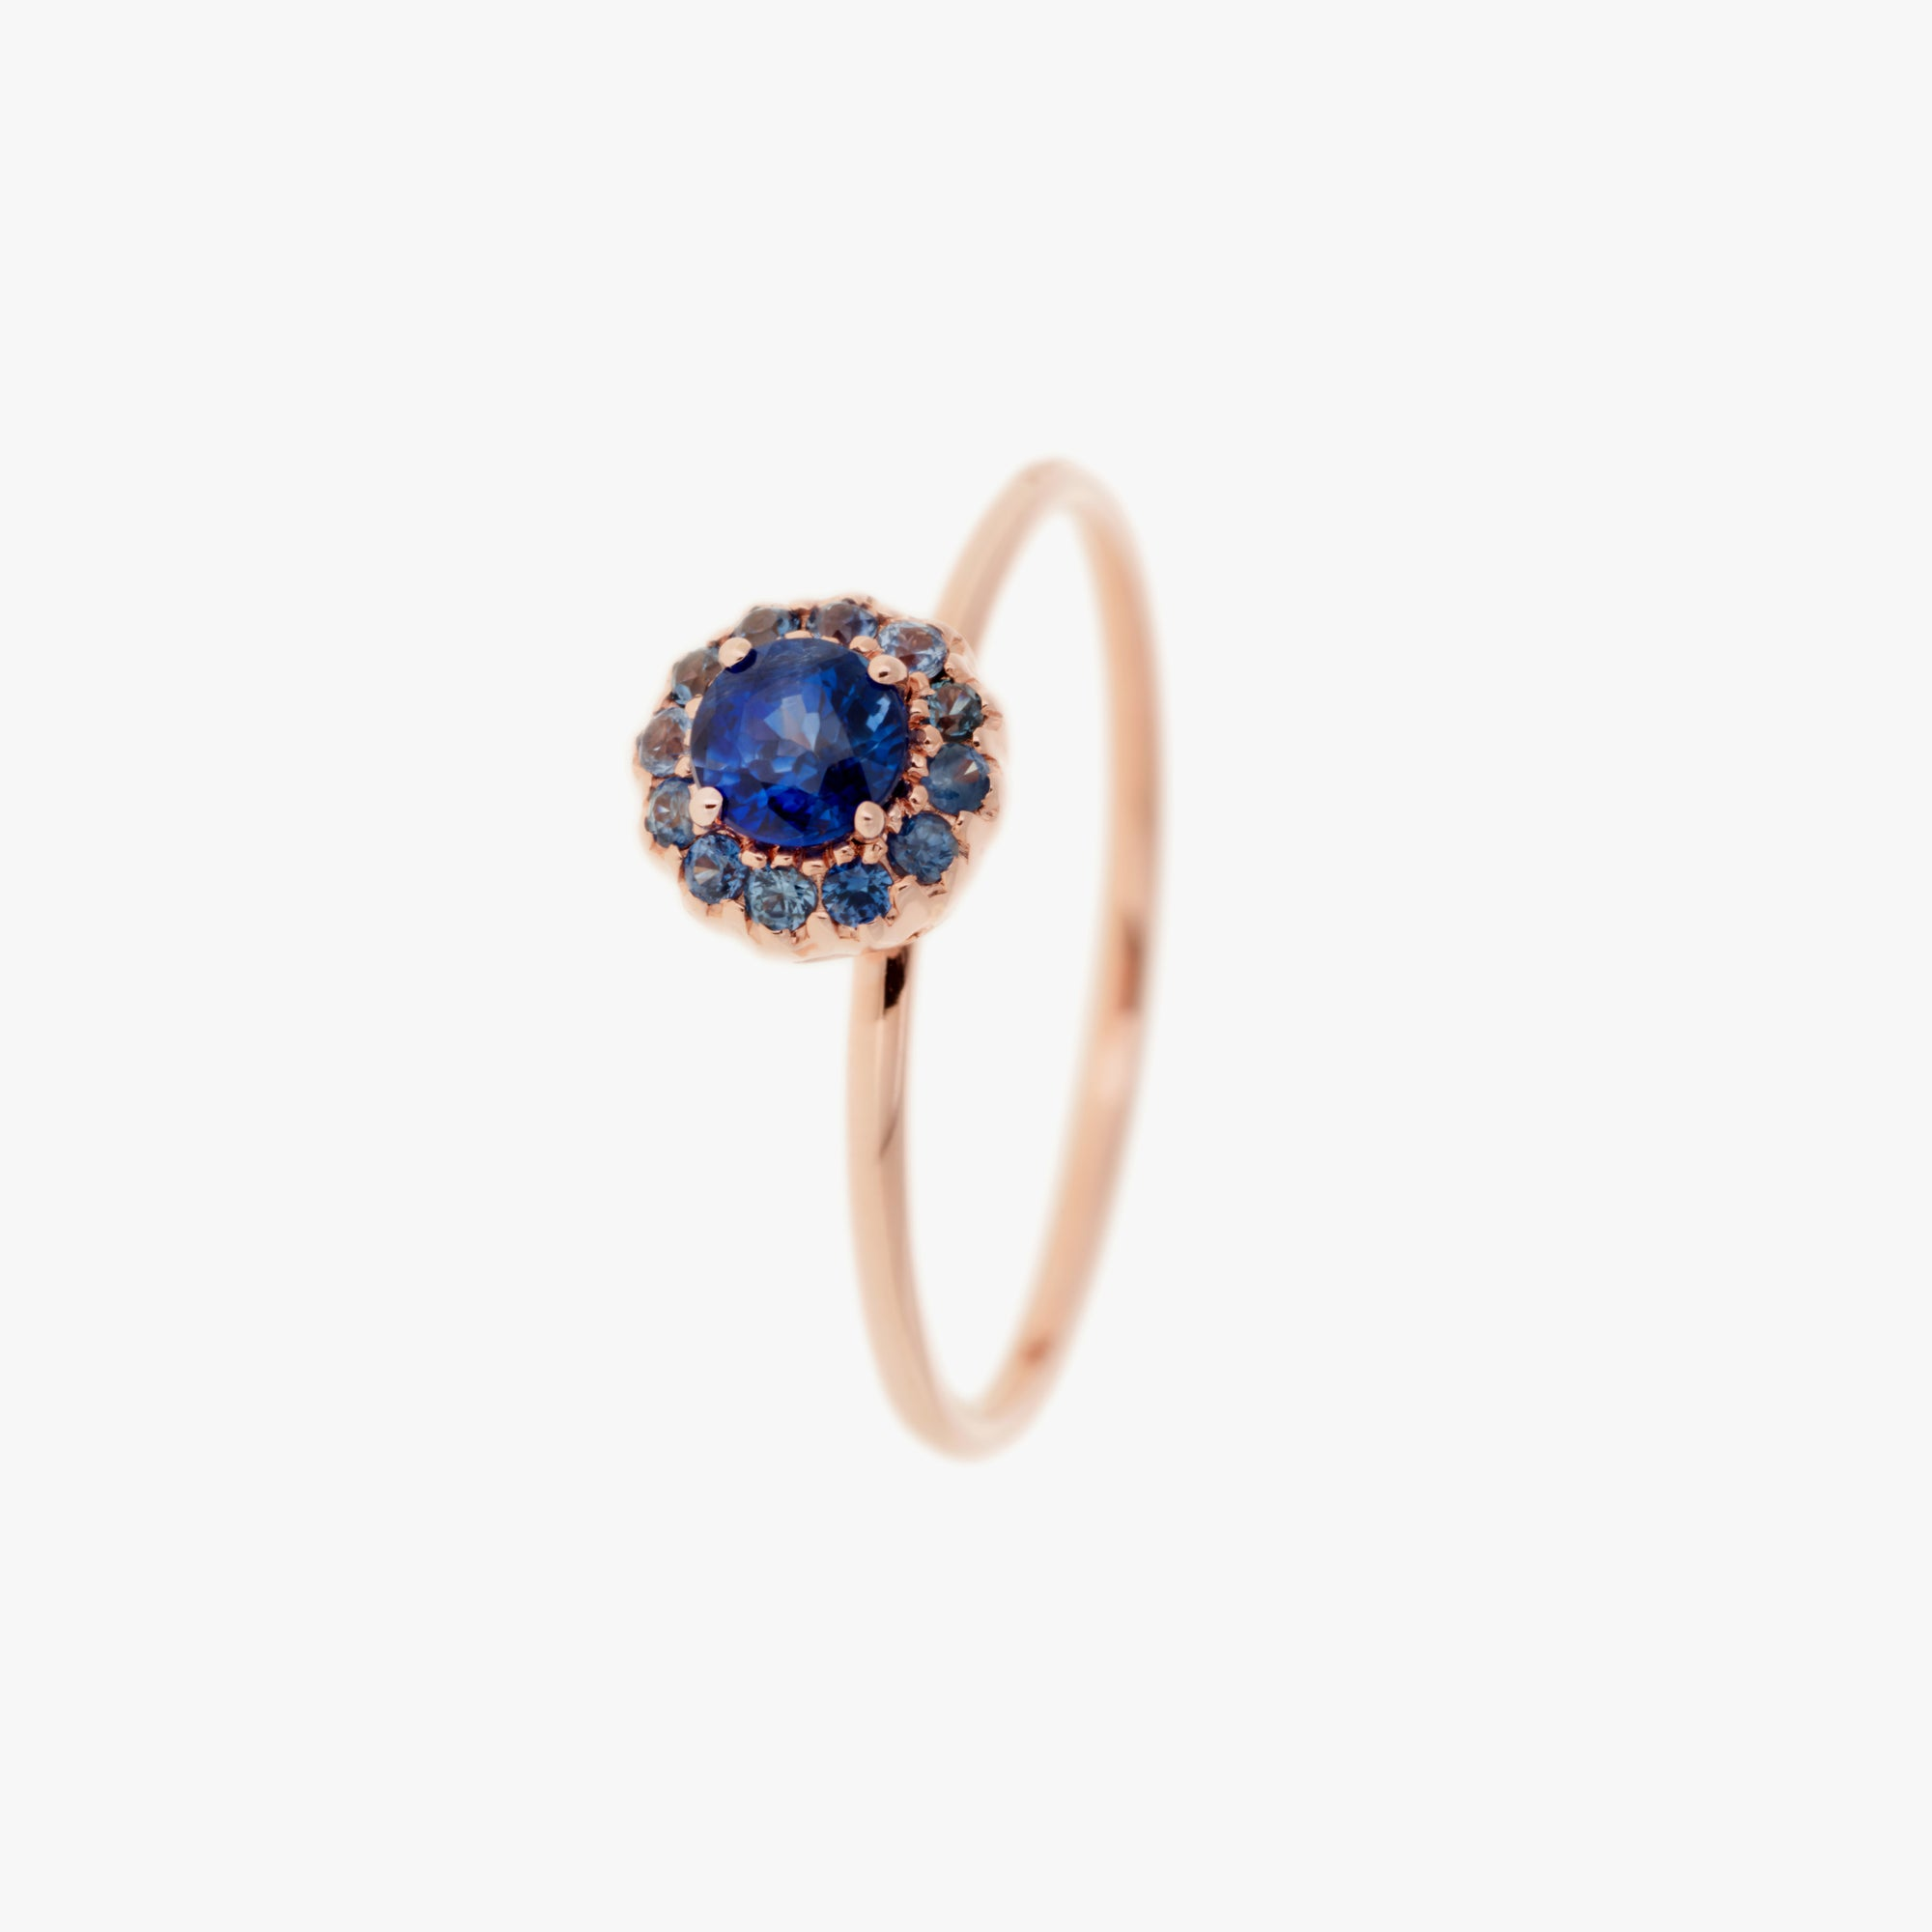 Beirut Small Blue Sapphire Ring